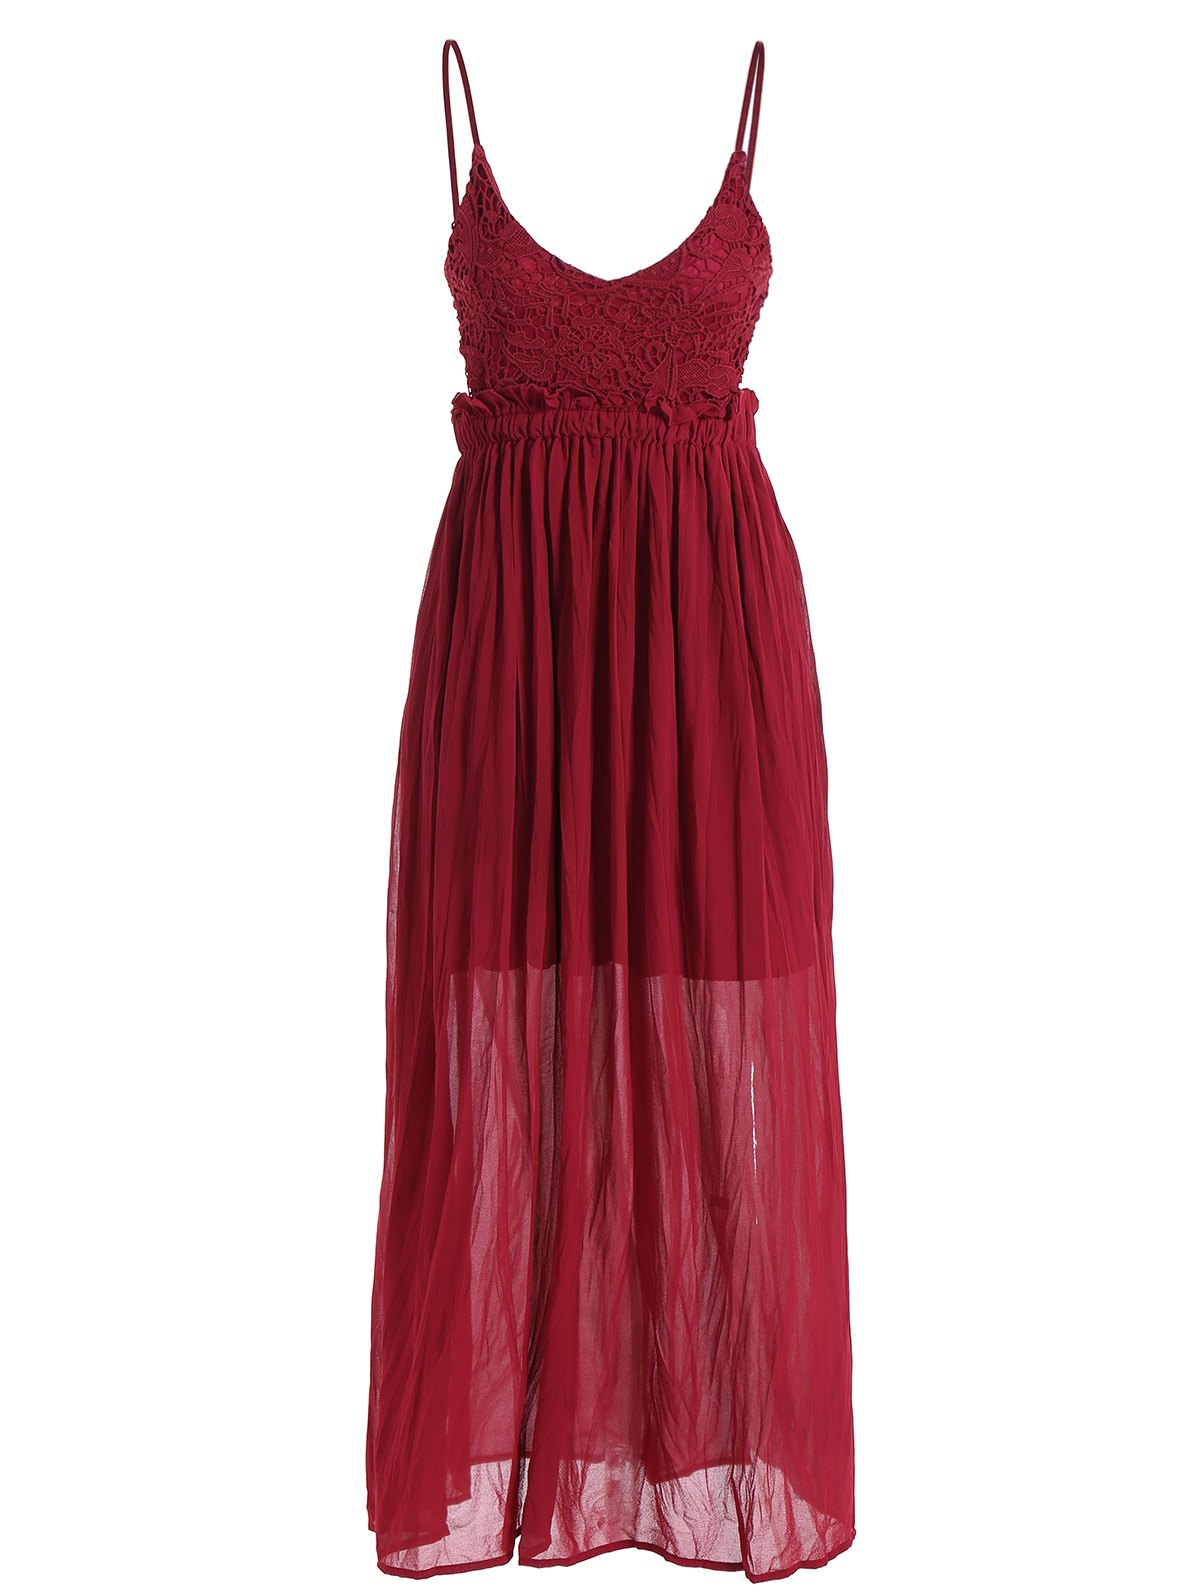 Spaghetti Strap Plunge Neck Maxi Chiffon Dress - WINE RED XL